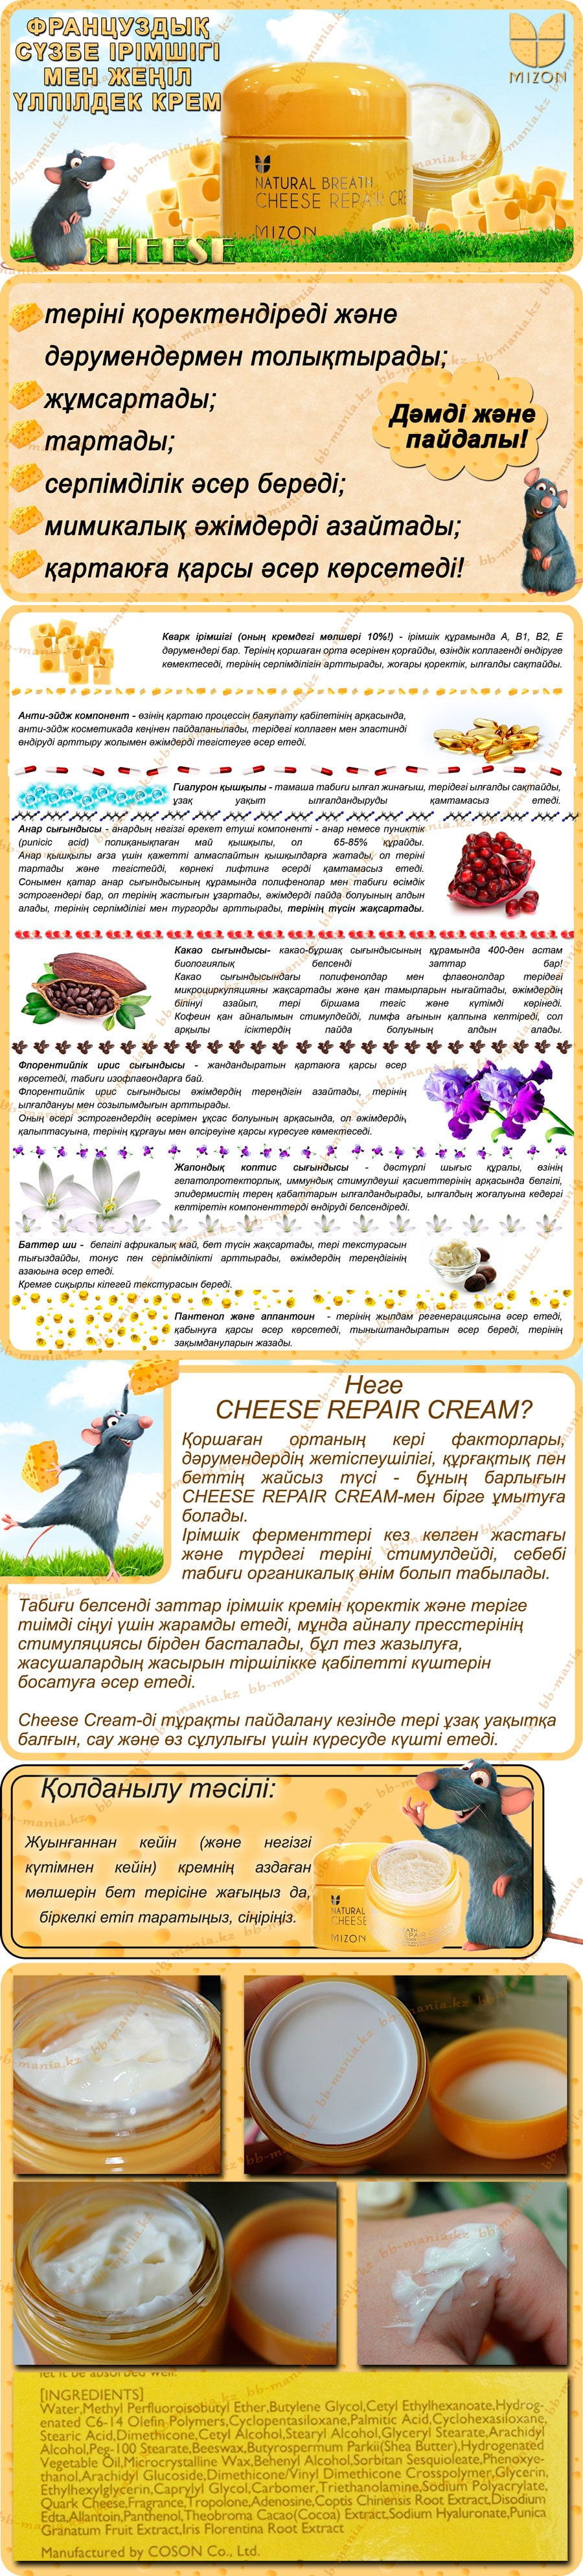 Cheese-Repair-Cream-[Mizon]-кз-min